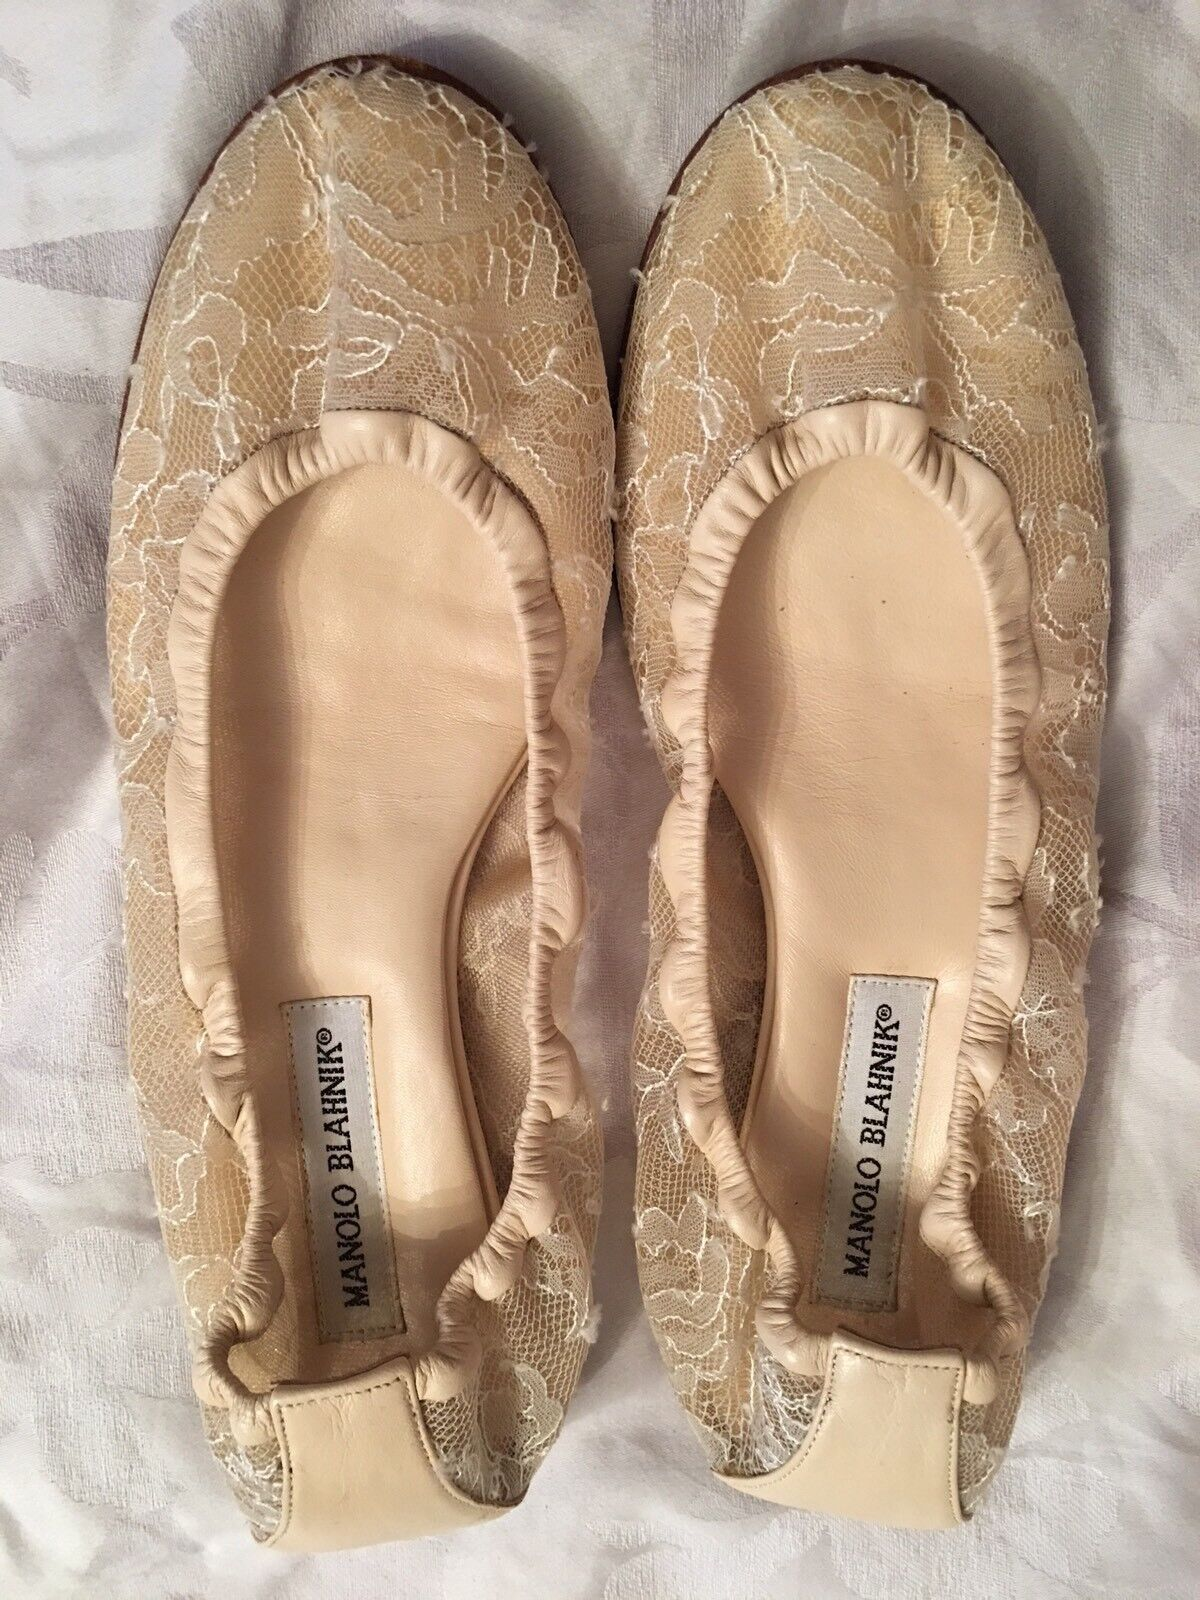 New Donna's Designer Manolo Blahnik Ivory Lace Flats Size 38.5 Made In Italy